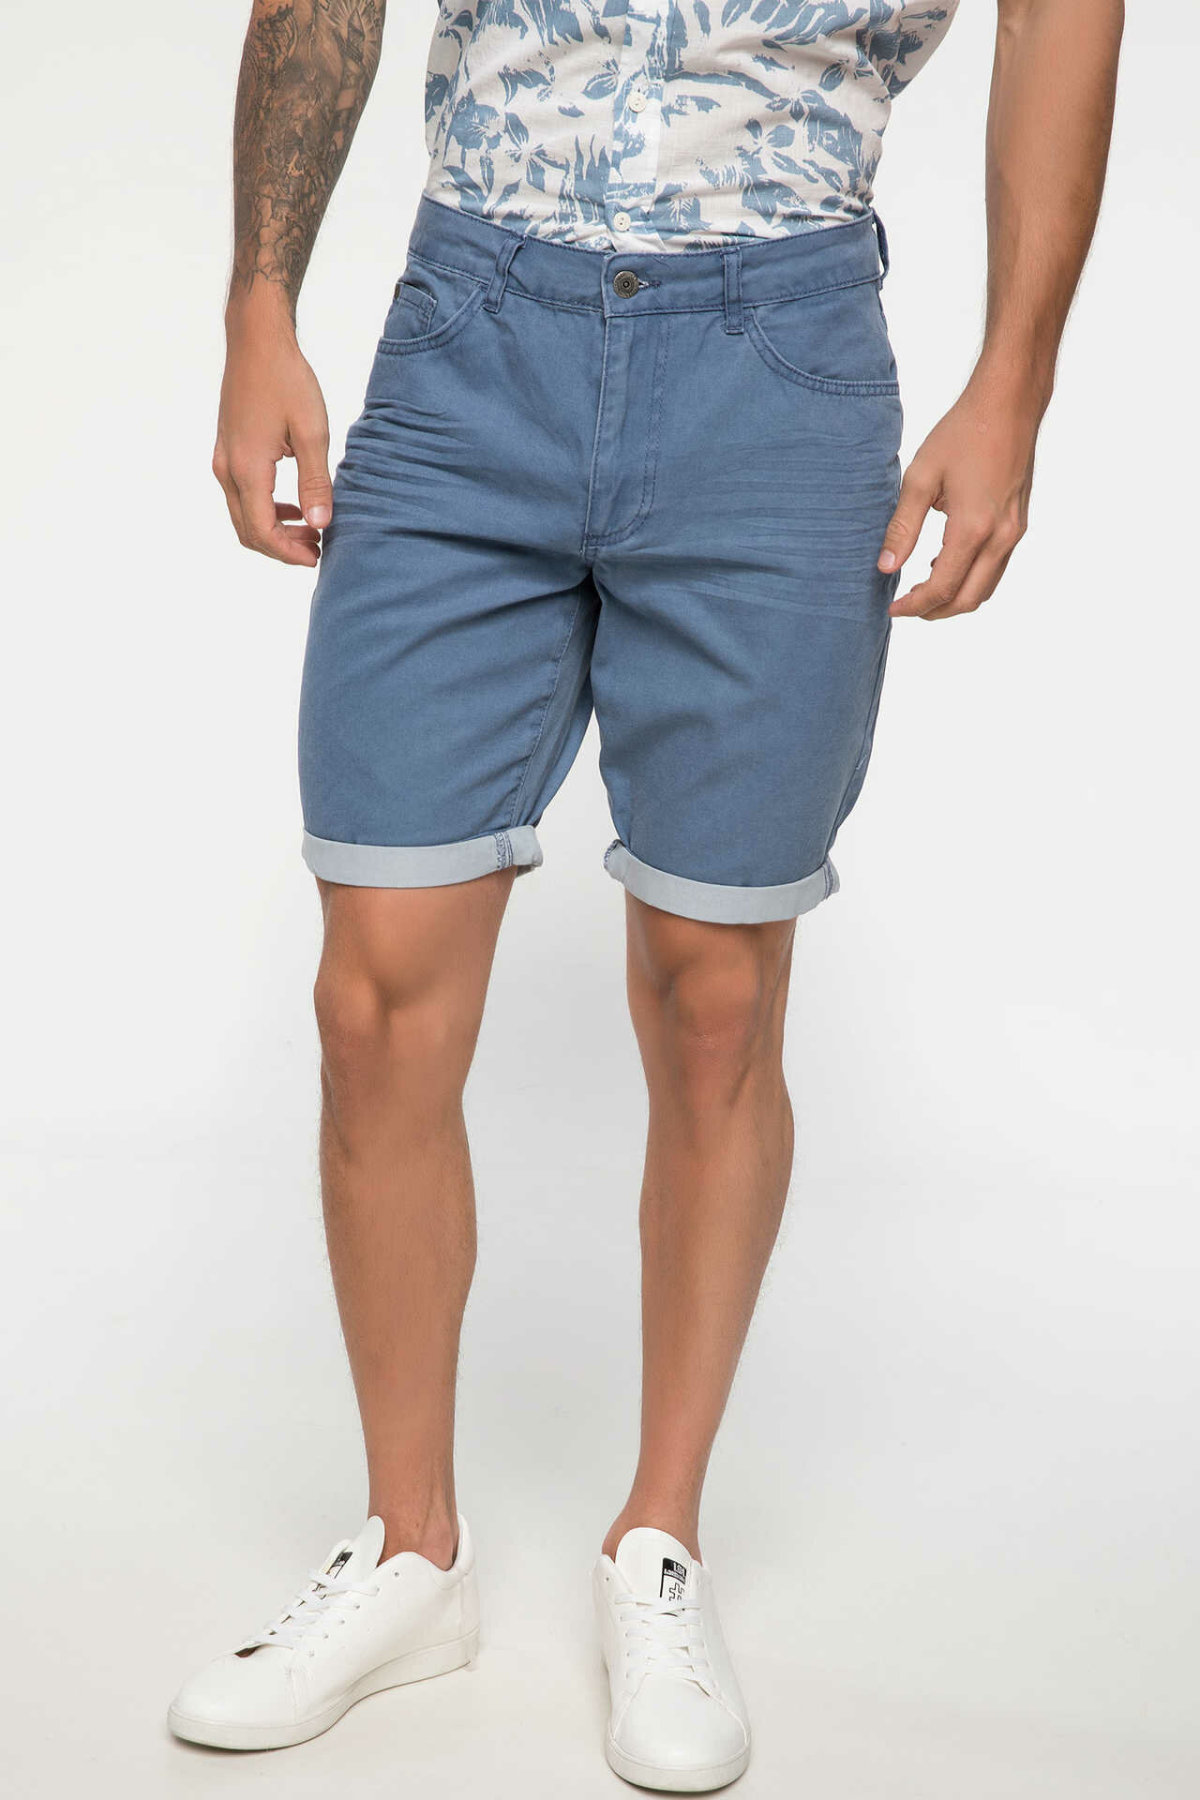 DeFacto Man Summer Blue Denim Shorts Men Casual Loose Denim Shorts Male Bermuda Short Bottoms-I8436AZ18SM